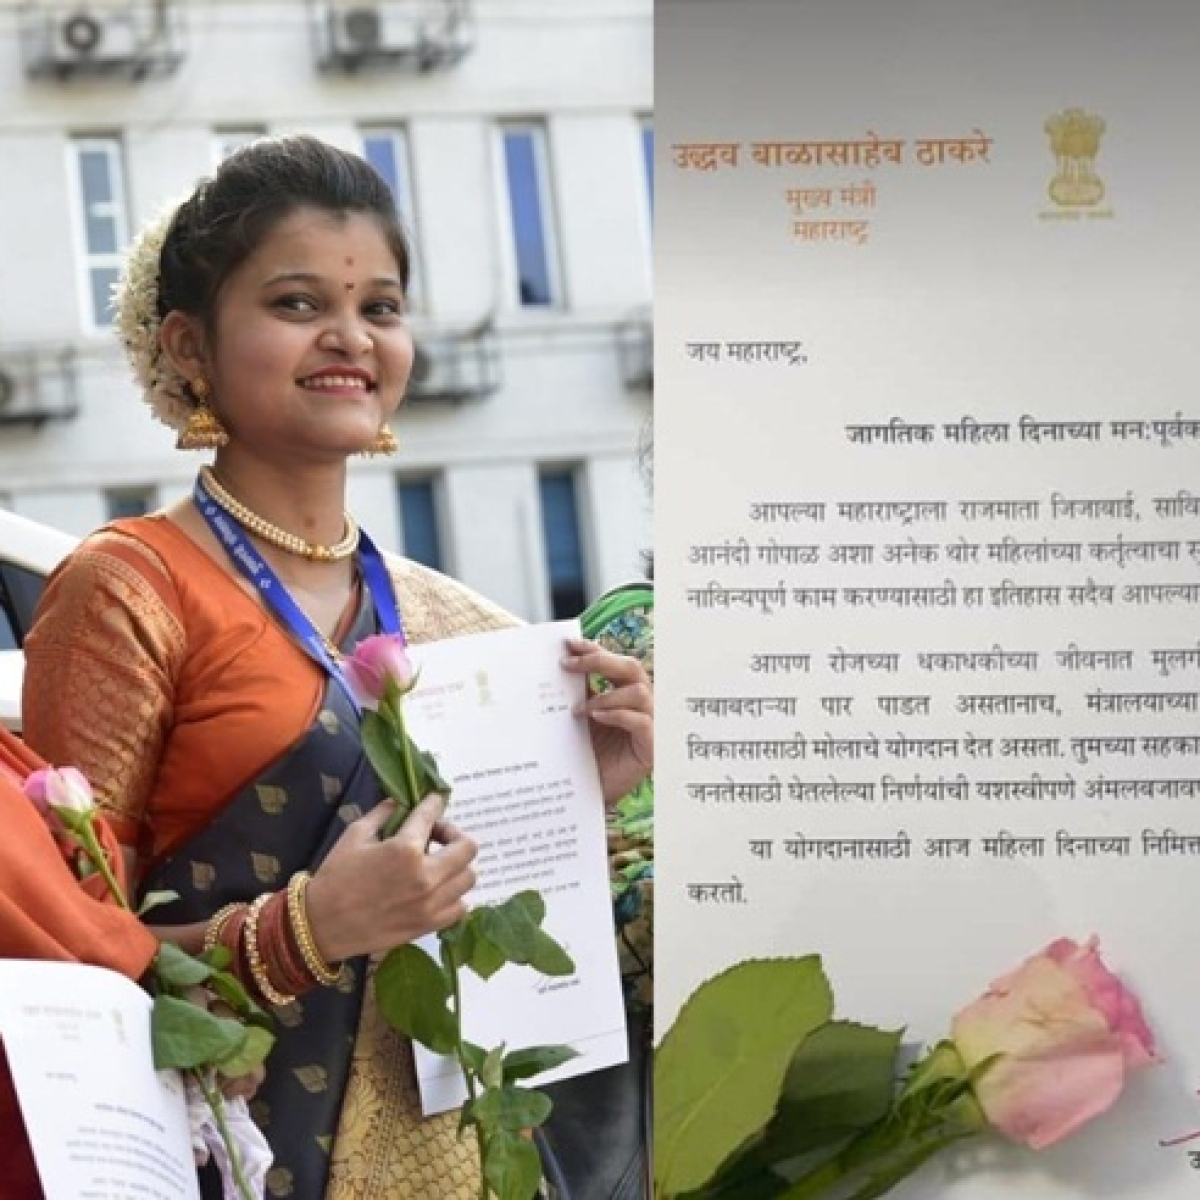 Ahead of Maharashtra Budget, Mantralaya women employees welcomed with written letter, roses from Uddhav Thackeray